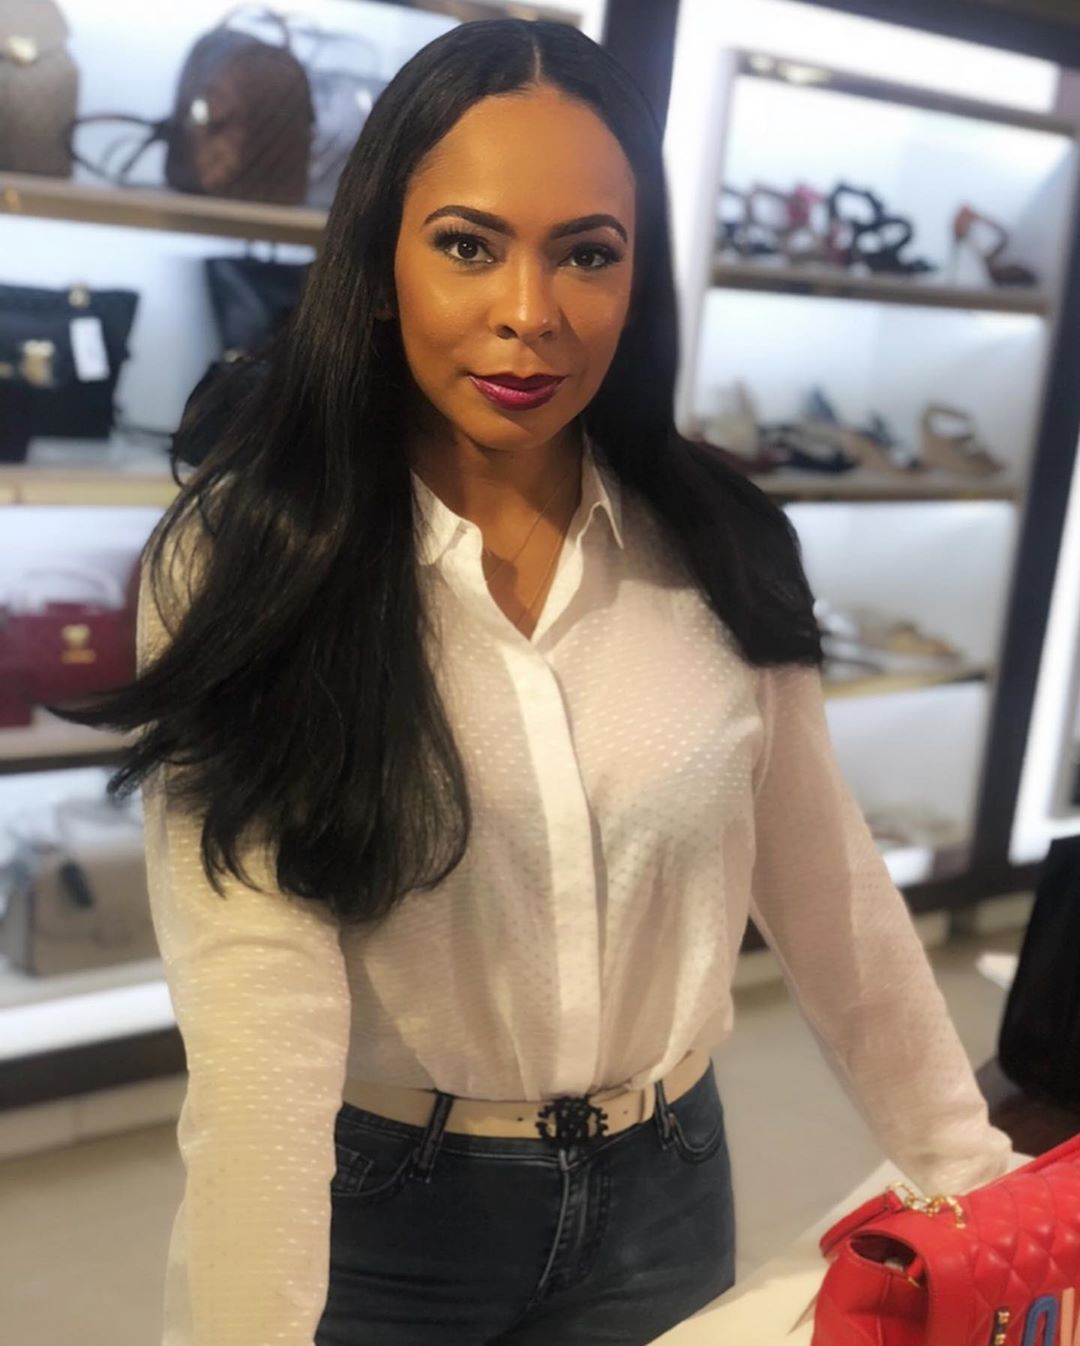 a96923ac2886a4df9d98a0e19b5b77cd - BBNaija's TBoss confirms birth of child, thanks everyone who stood by her